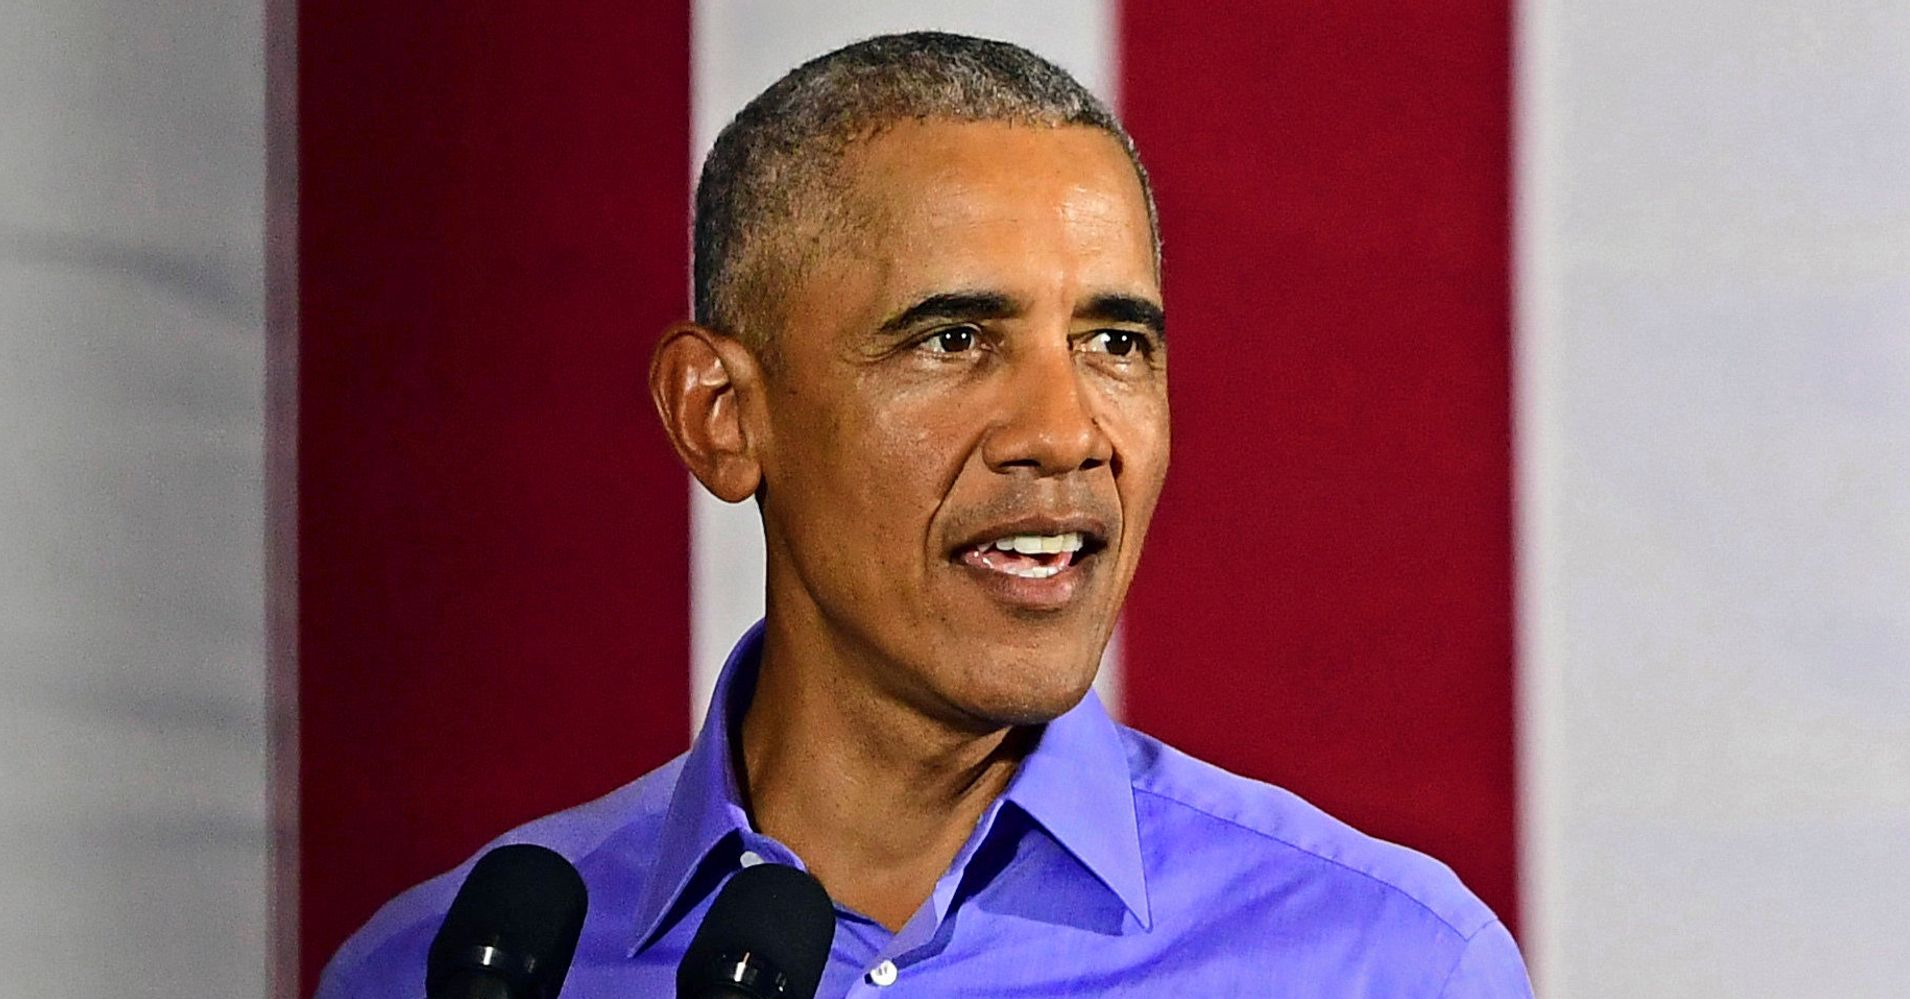 Barack Obama Tells Democrats: 'I Need You To Come Through' In November | HuffPost